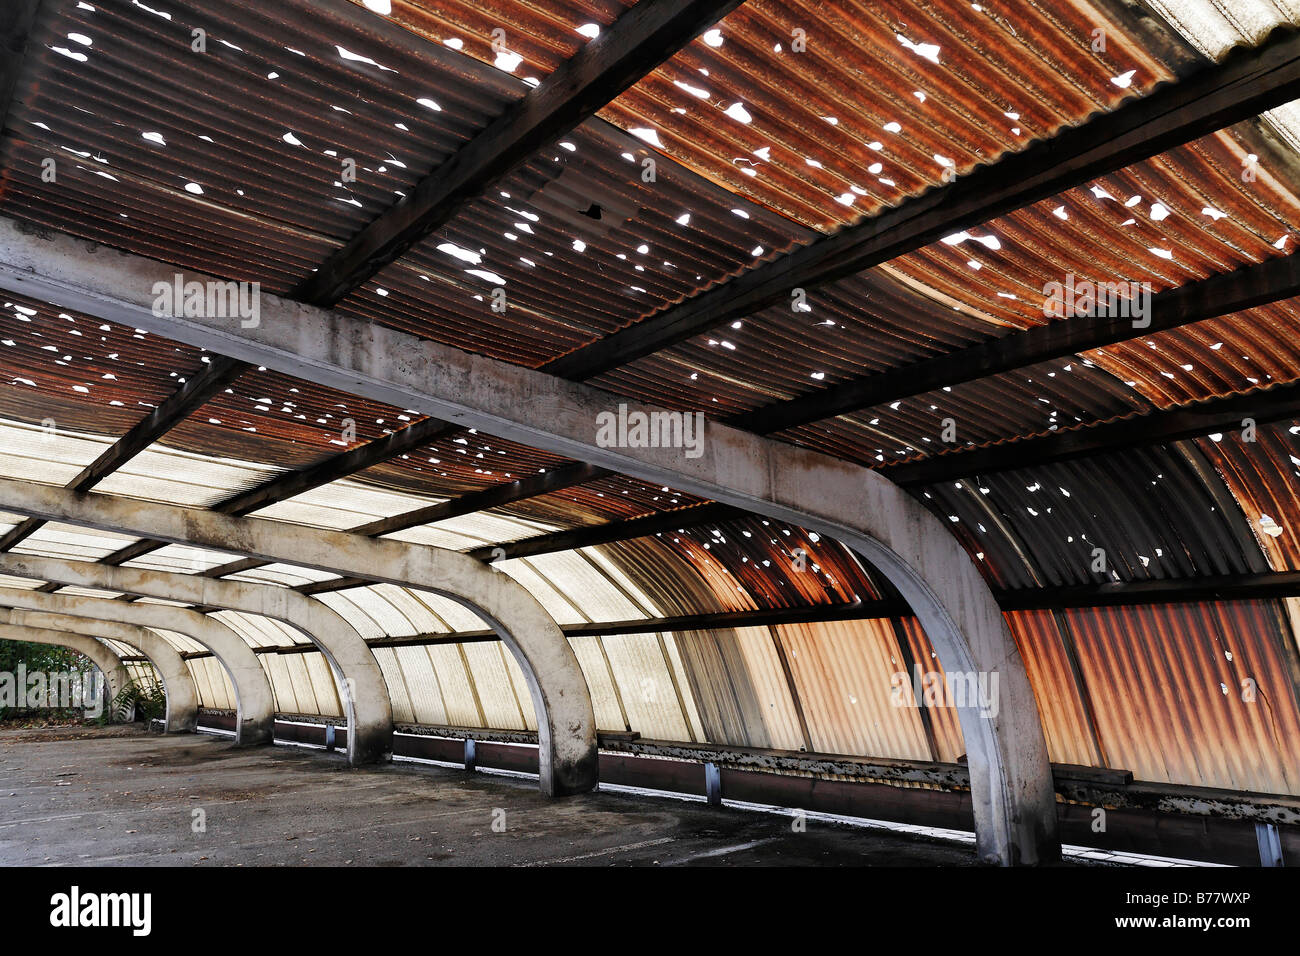 Corrugated roof made of plastic, holes caused by hail, brown colouring caused by pollution, factory parking place - Stock Image